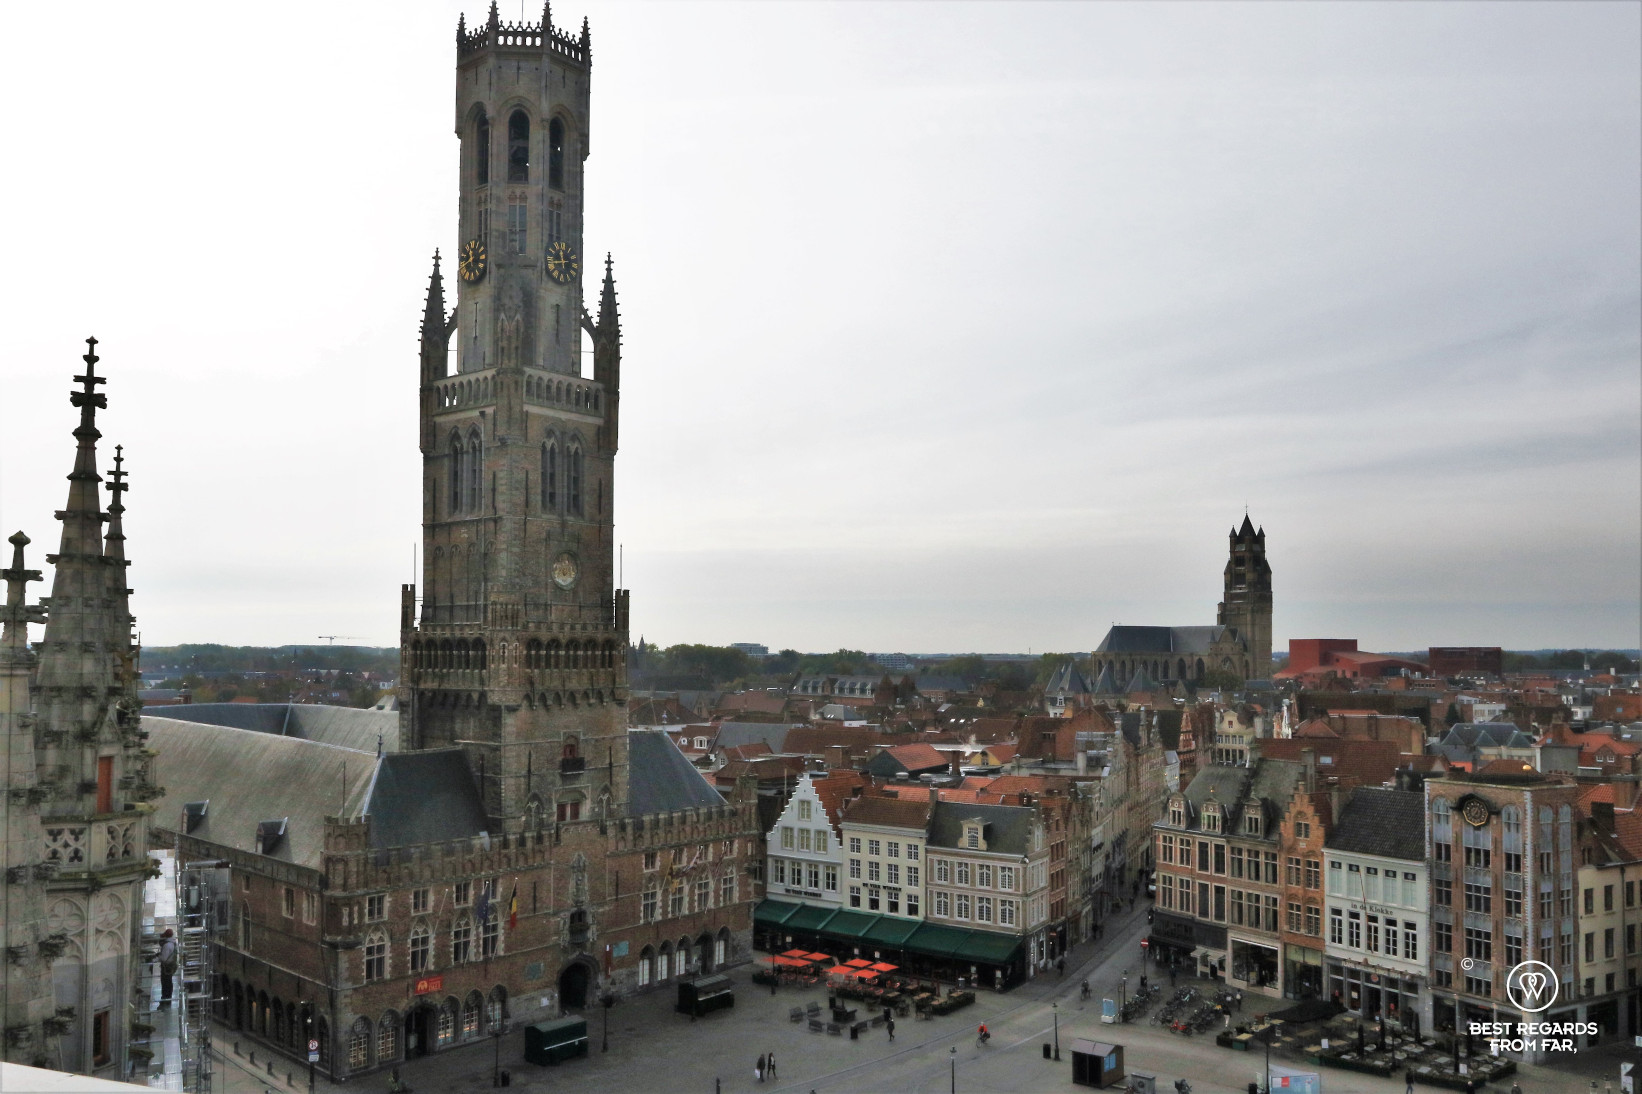 The Belfry of Bruges and the Markt Square from the Historium.